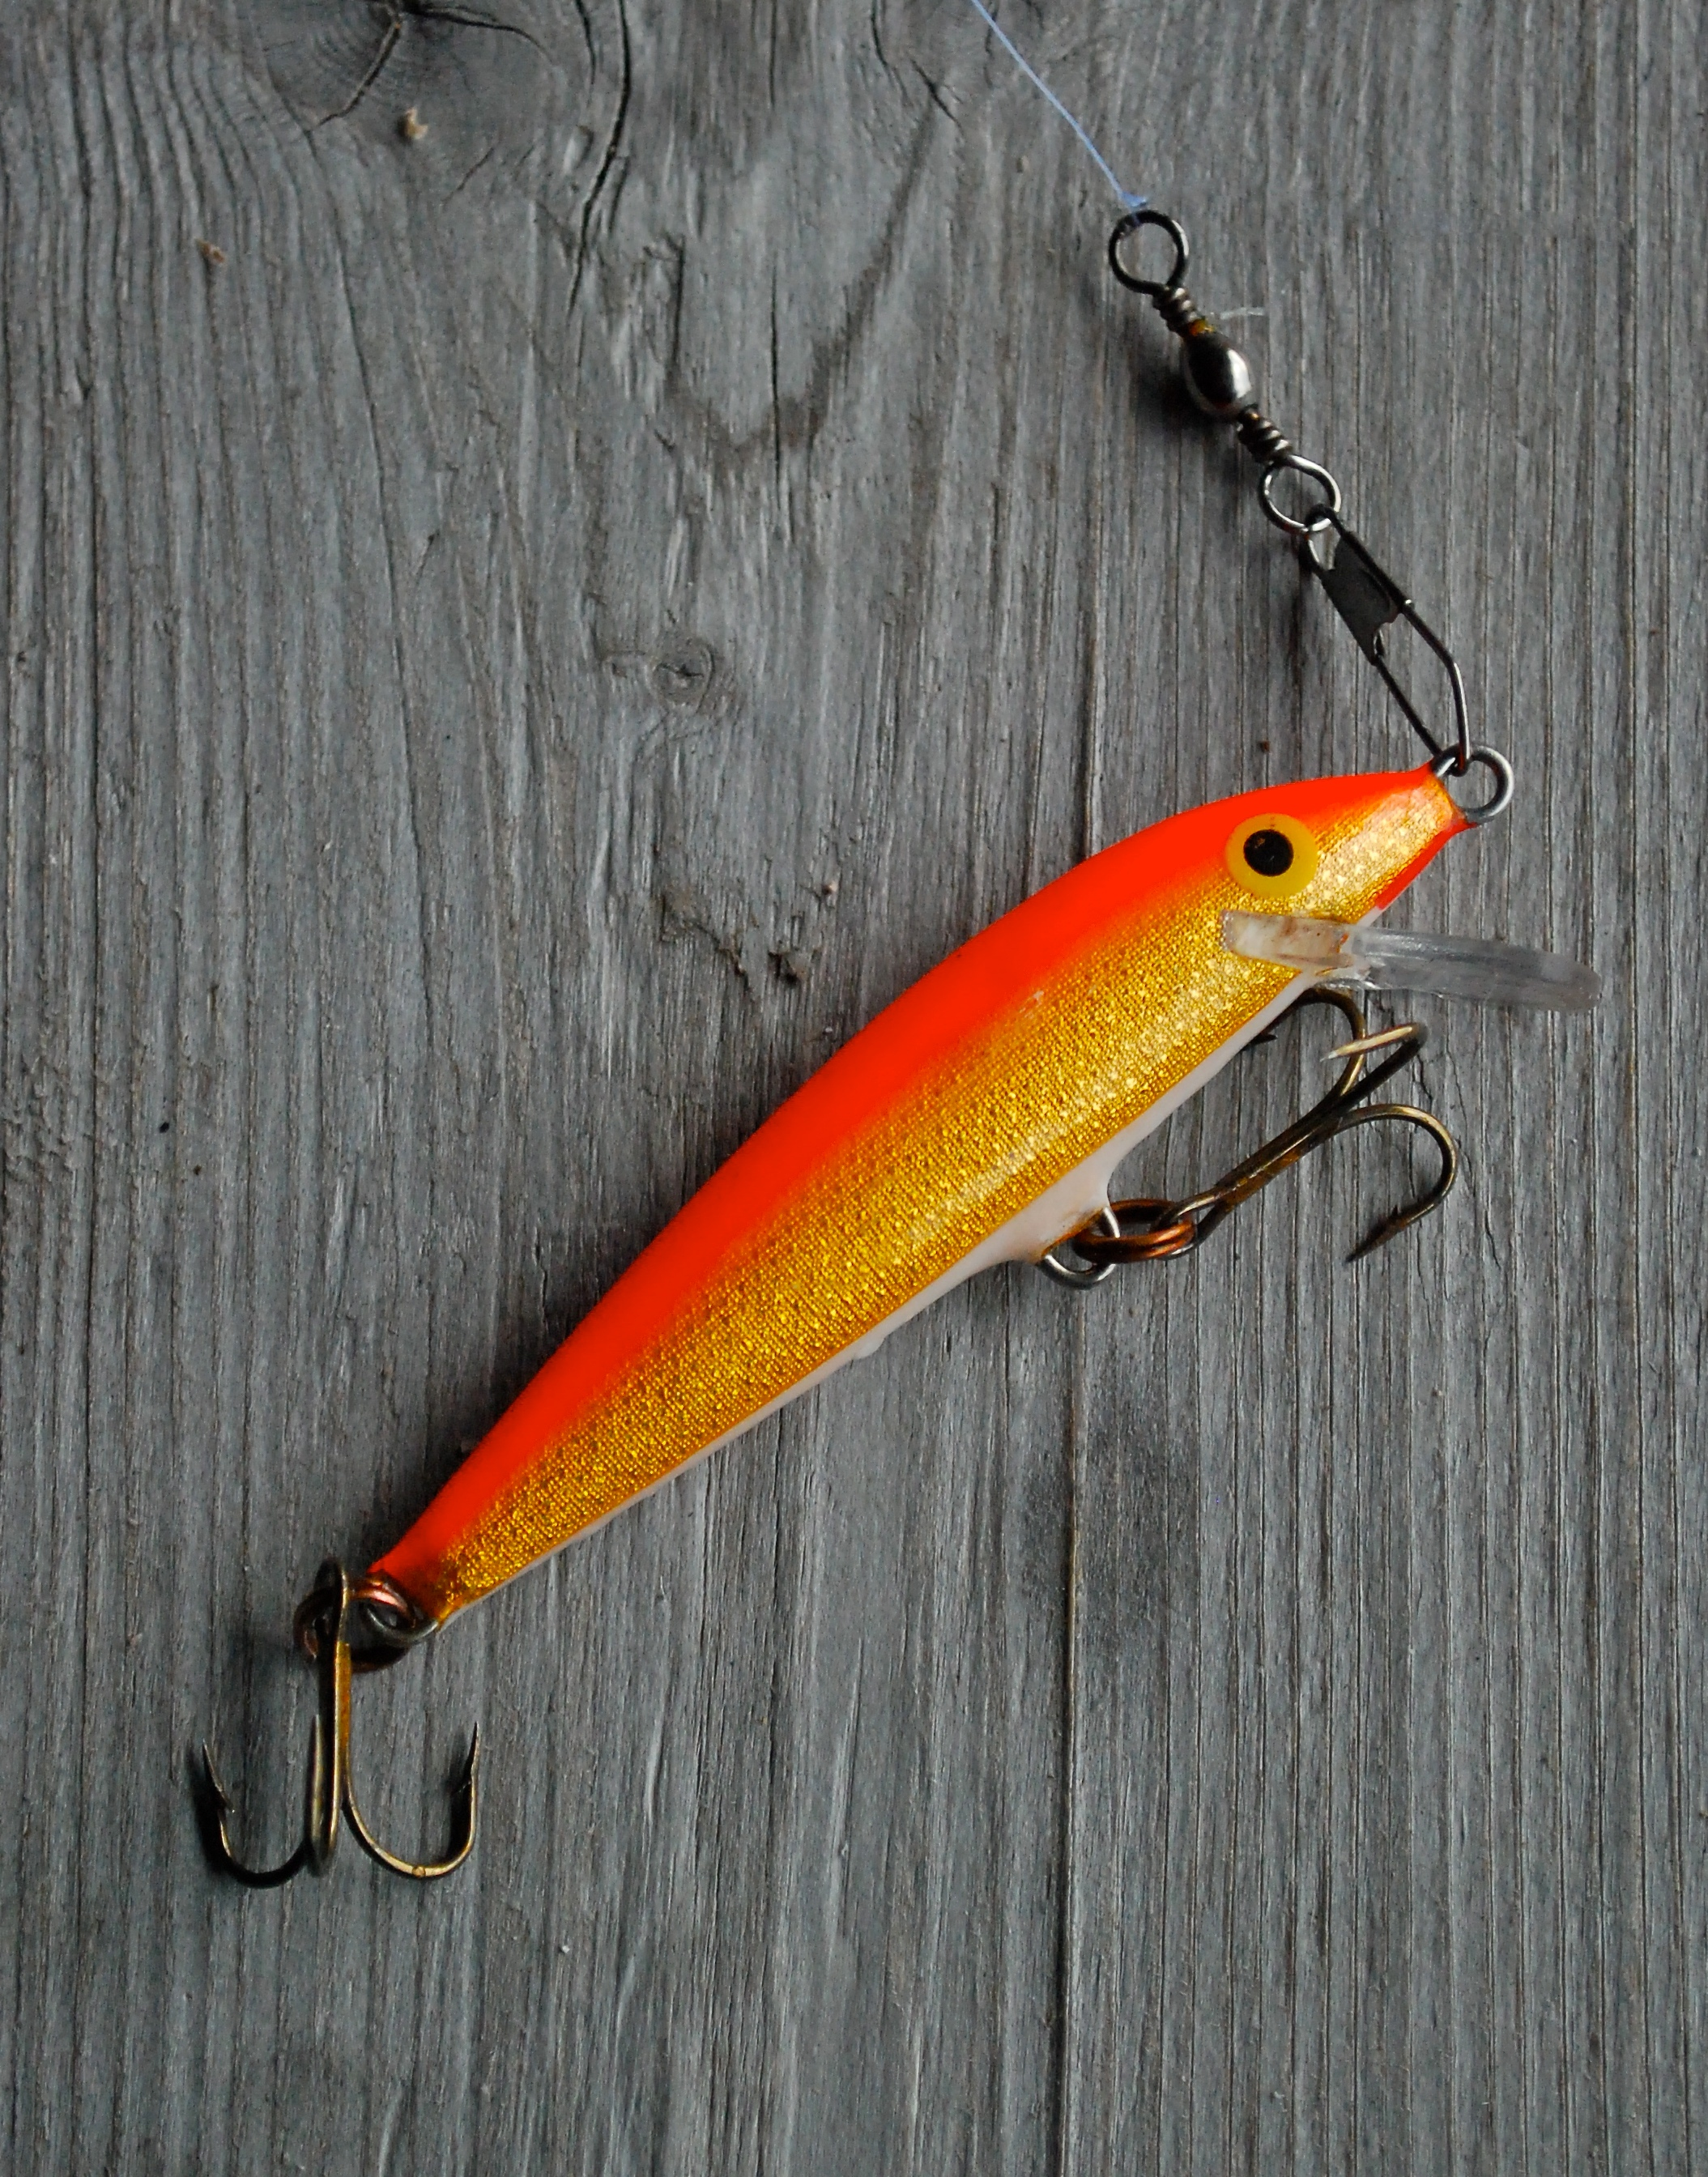 file:rapala fishing lure - wikimedia commons, Reel Combo